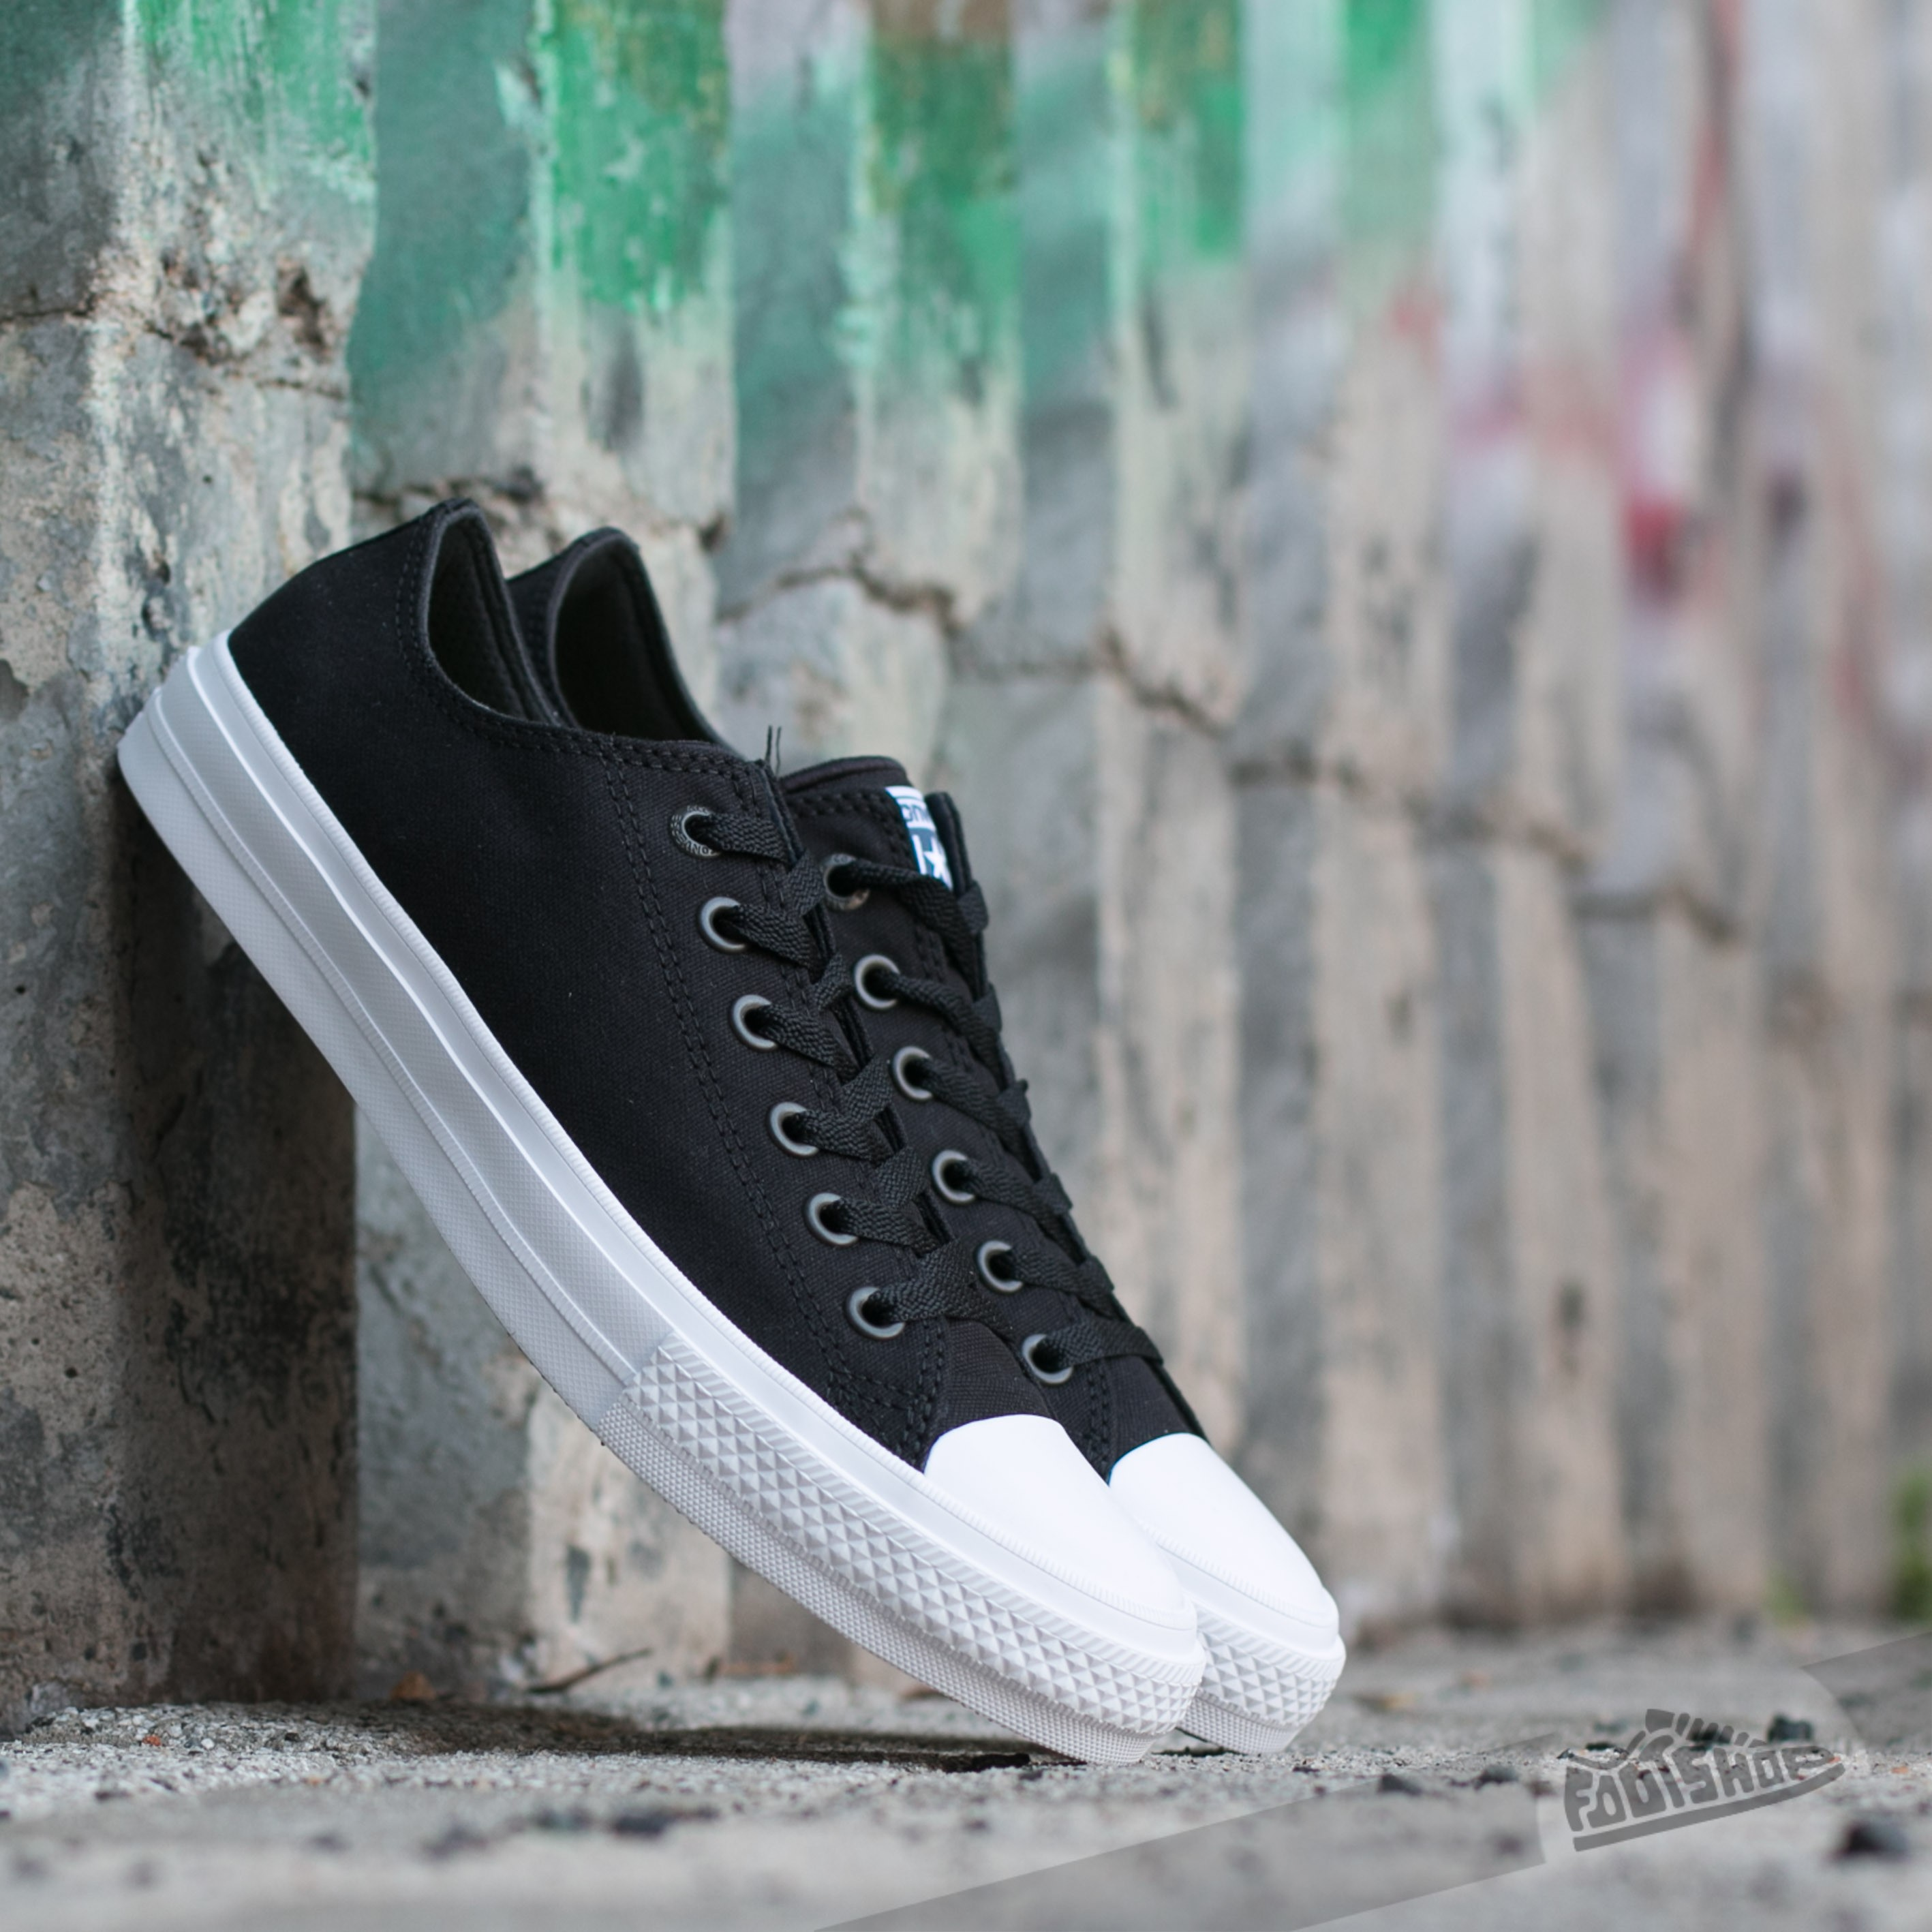 cae4424ccd4d Converse CT II Ox Black  White